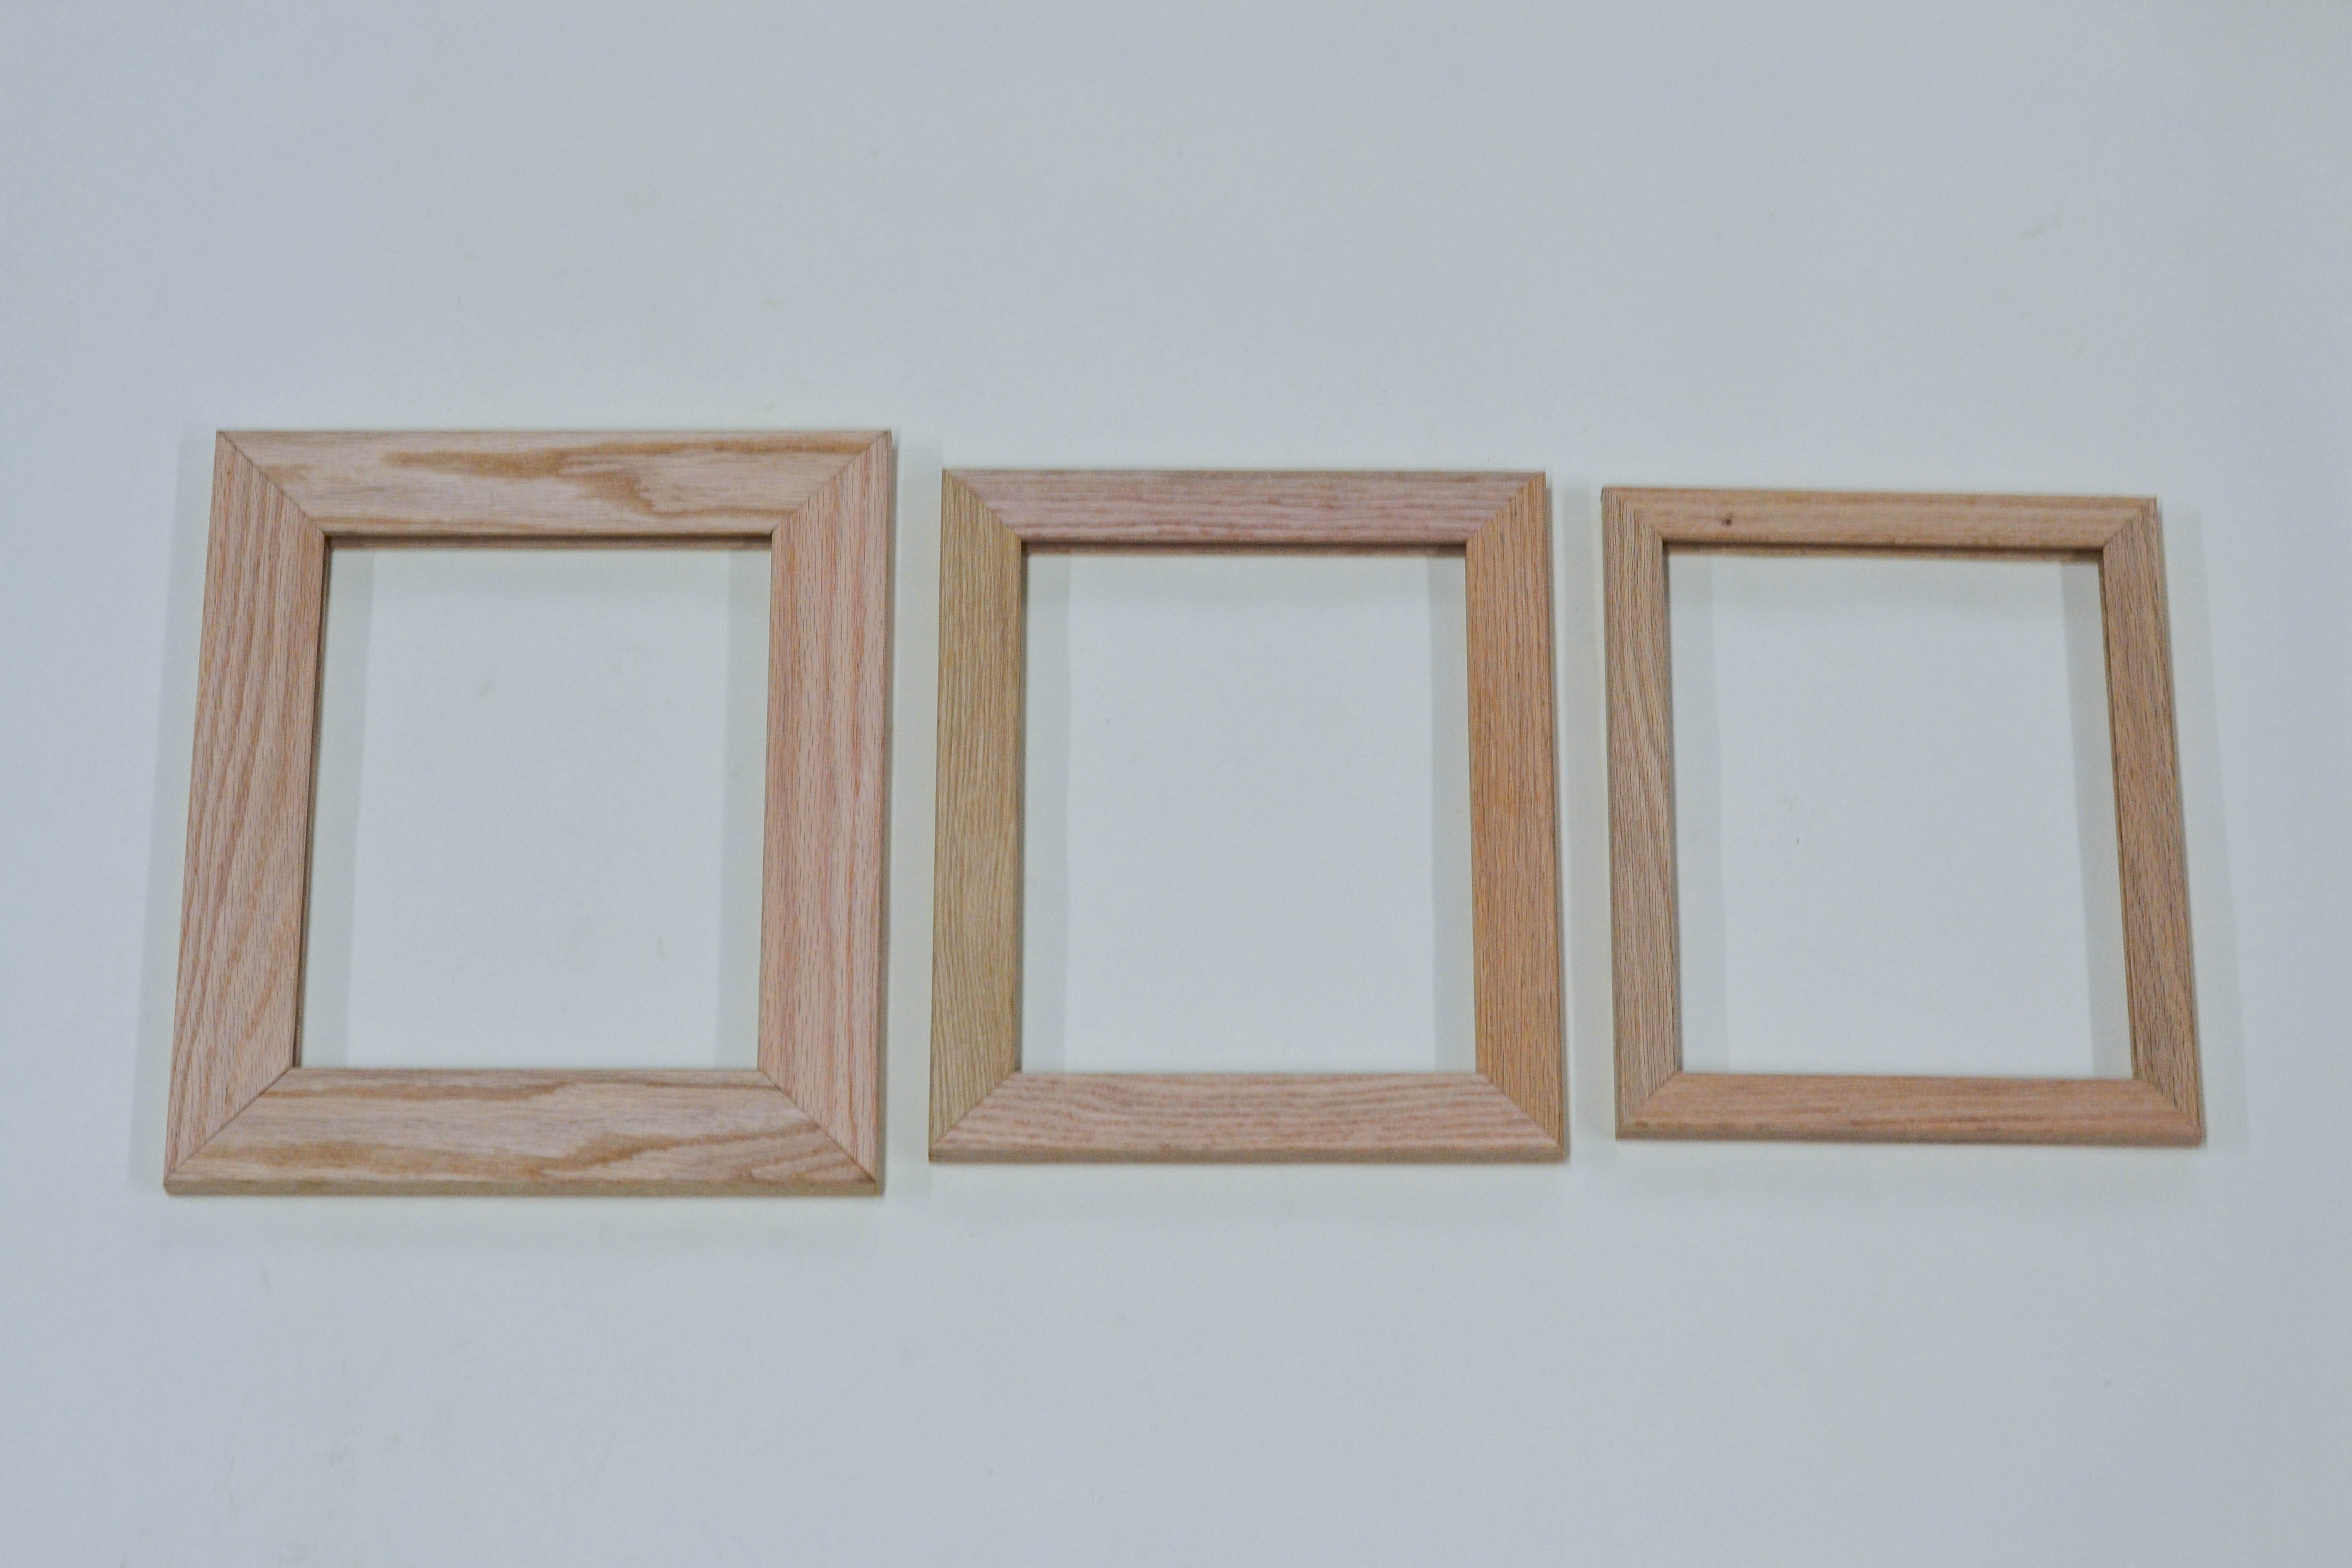 Unfinished Picture Frames